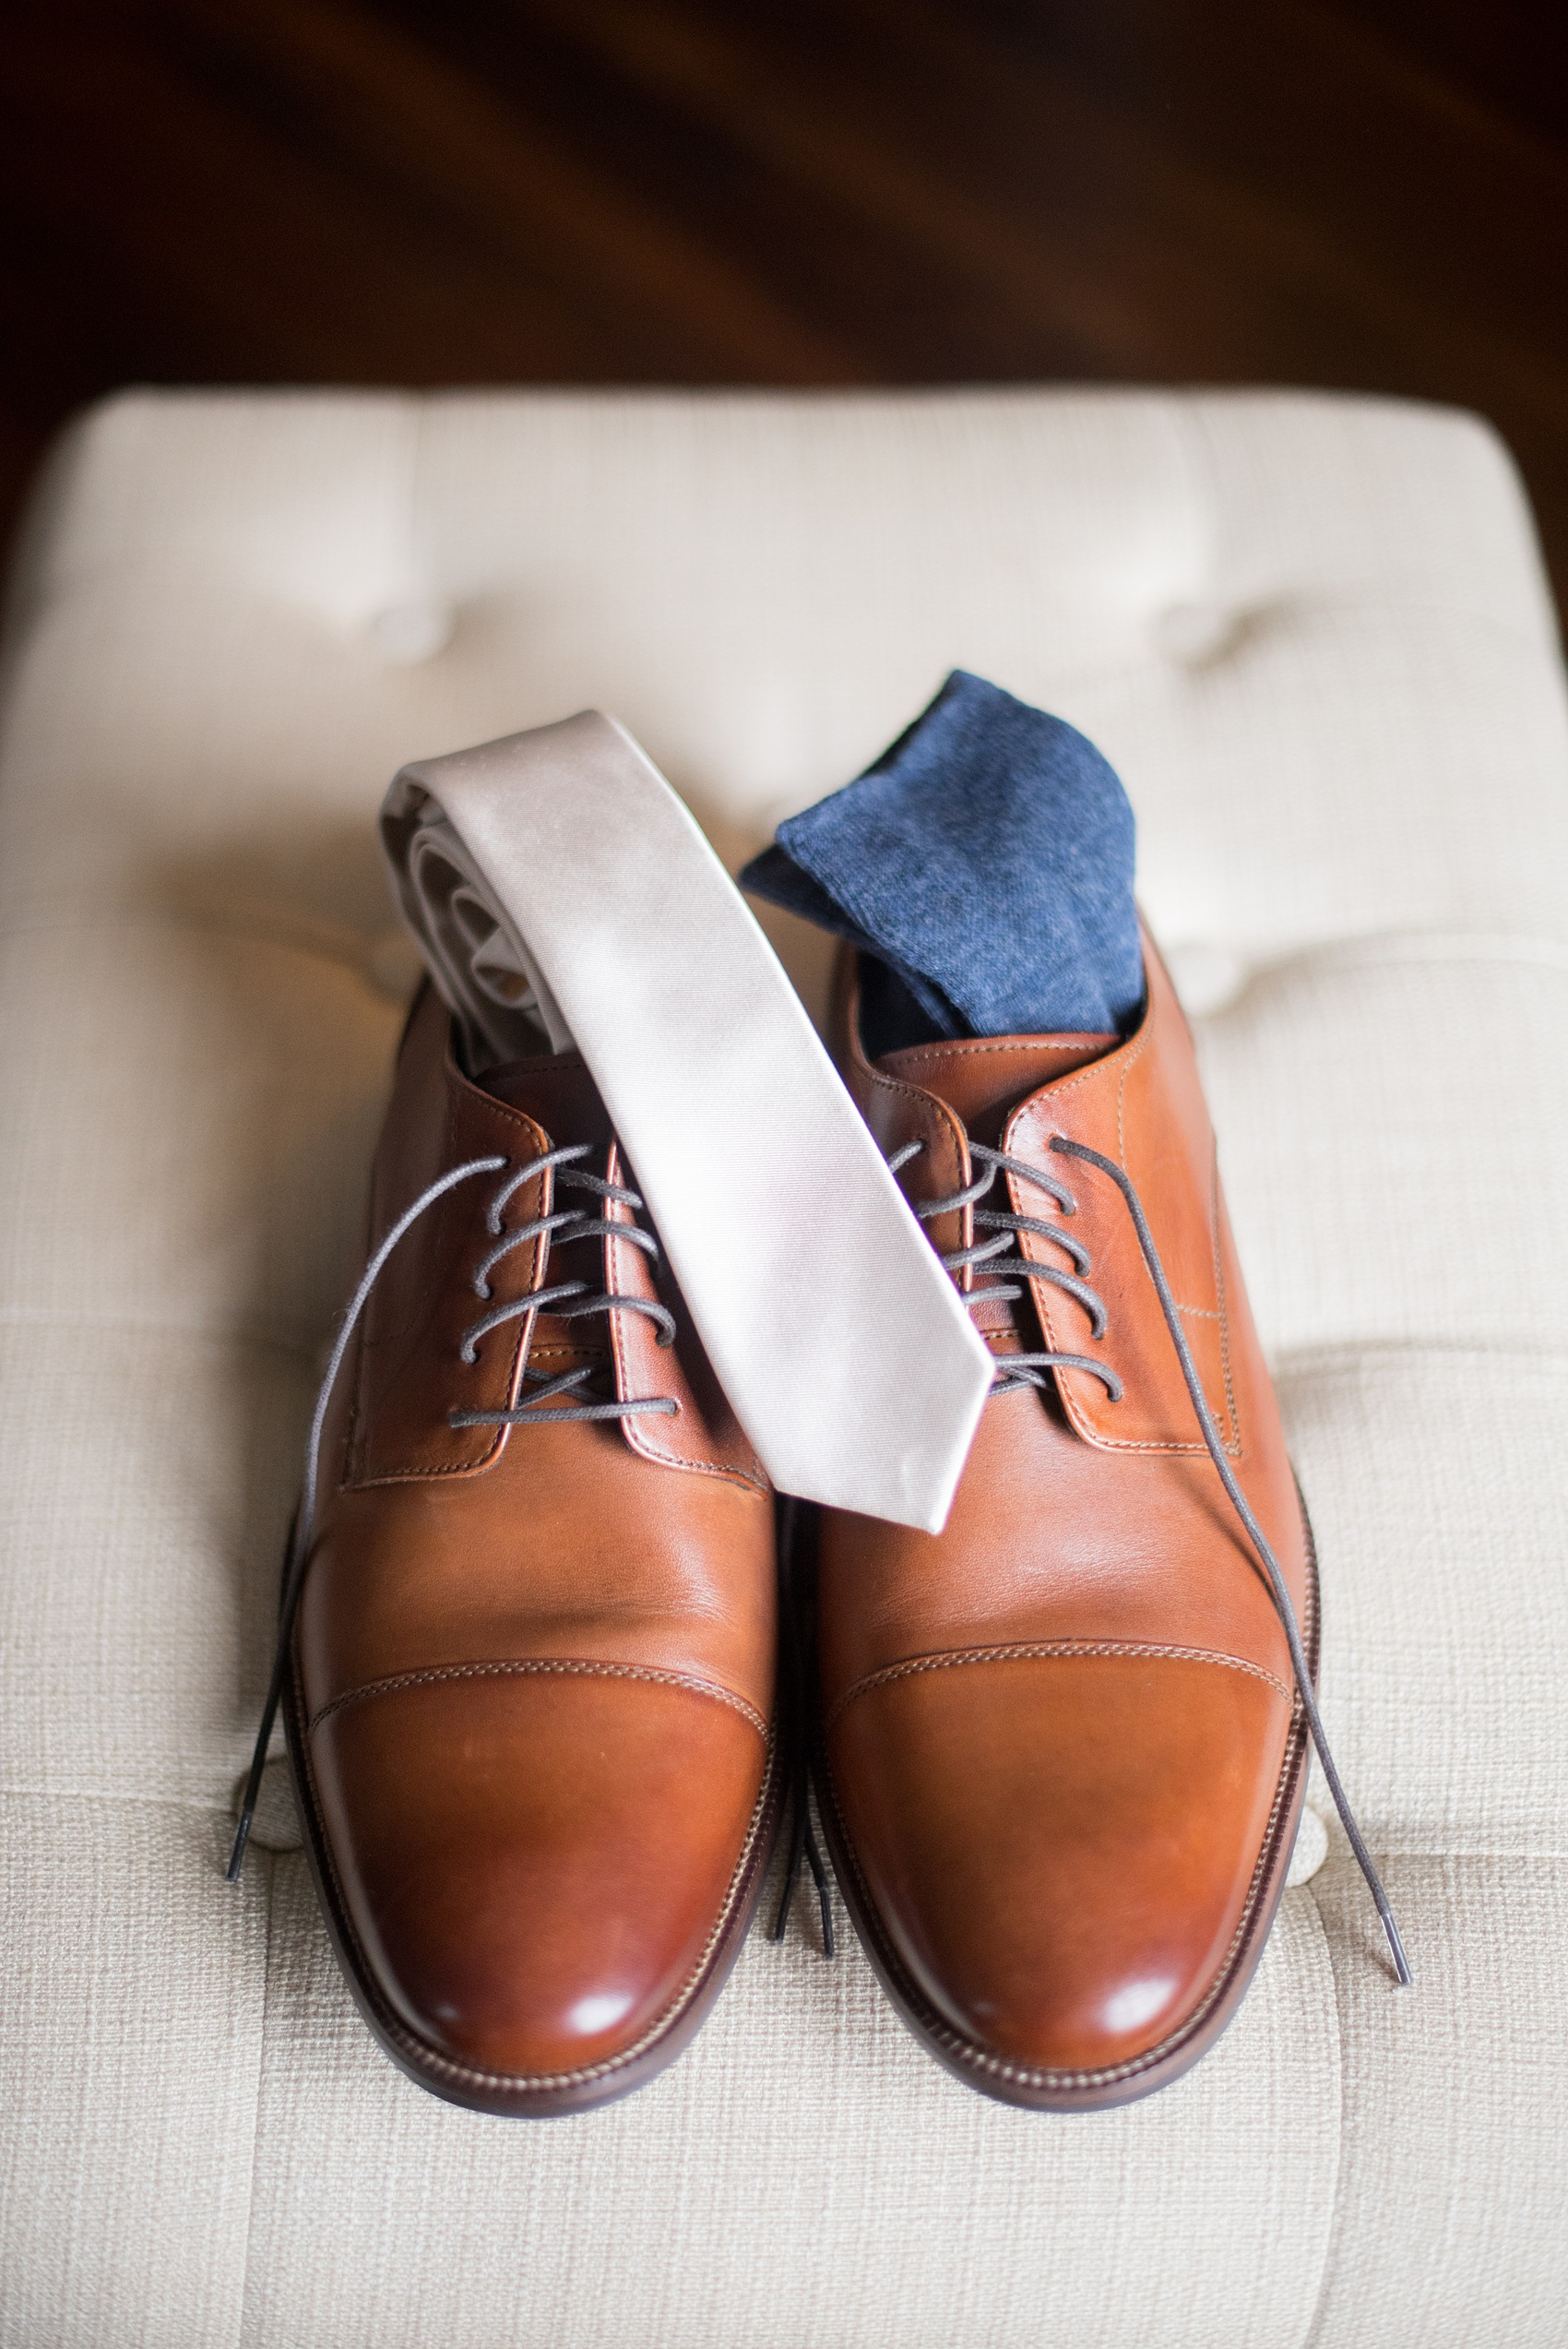 Mikkel Paige Photography photos from a wedding at Leslie-Alford Mims House in North Carolina. Picture of the groom's brown leather shoes, navy socks and off white tie.